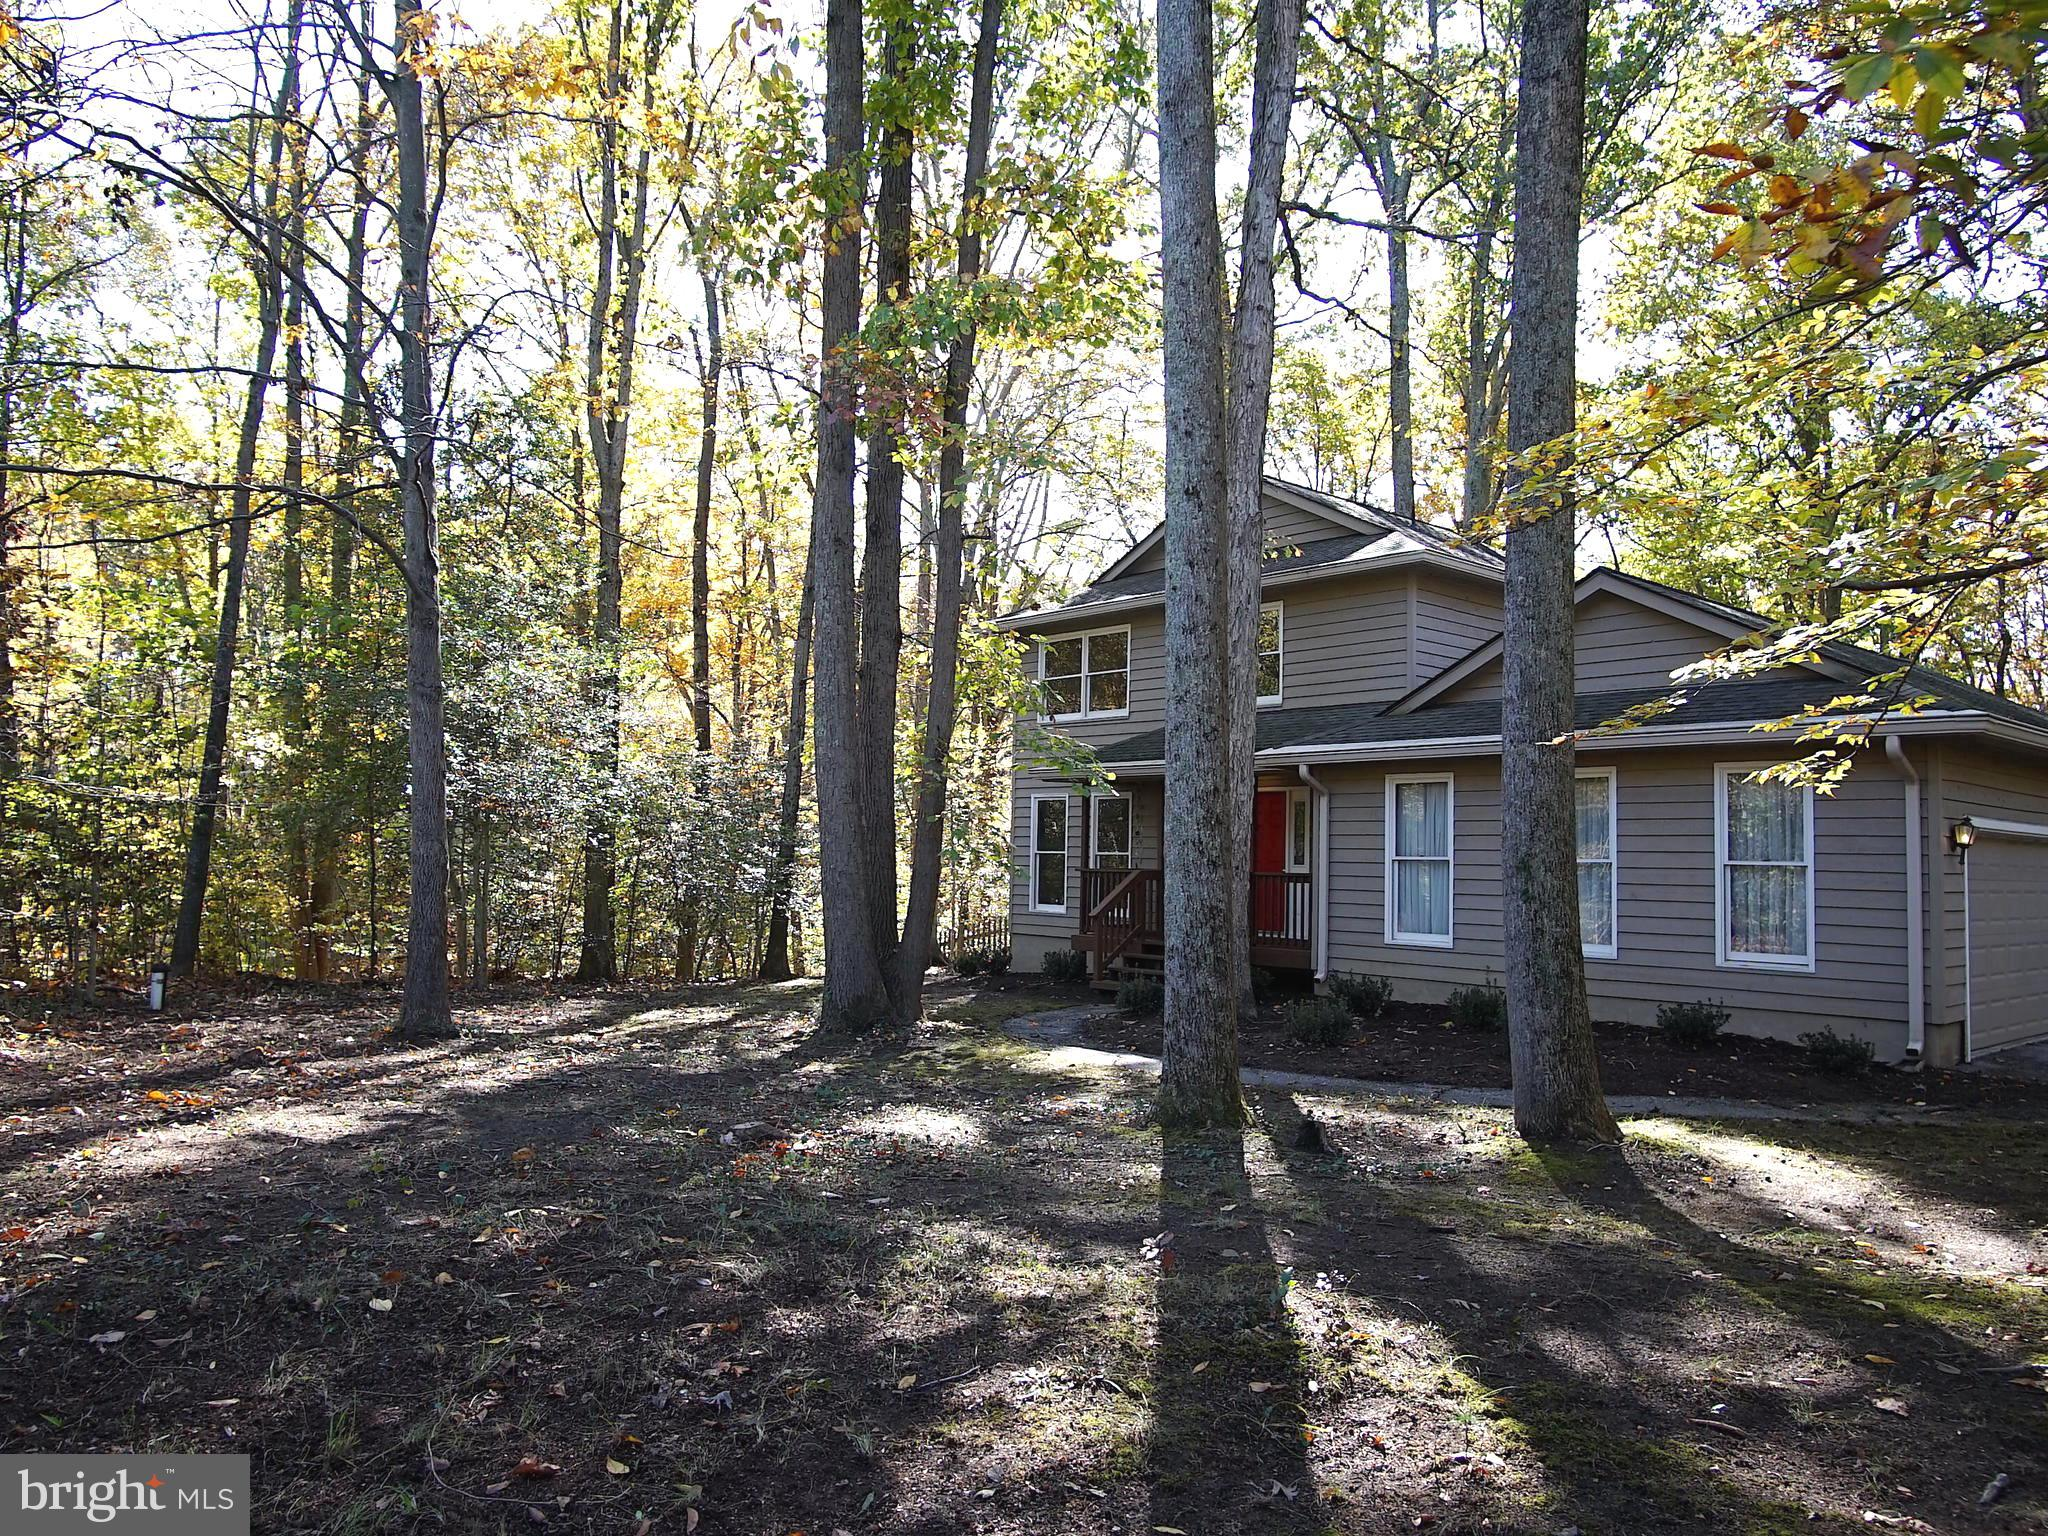 Great opportunity under 500k in popular community of Gingerville Woods--just minutes to shopping, Rt